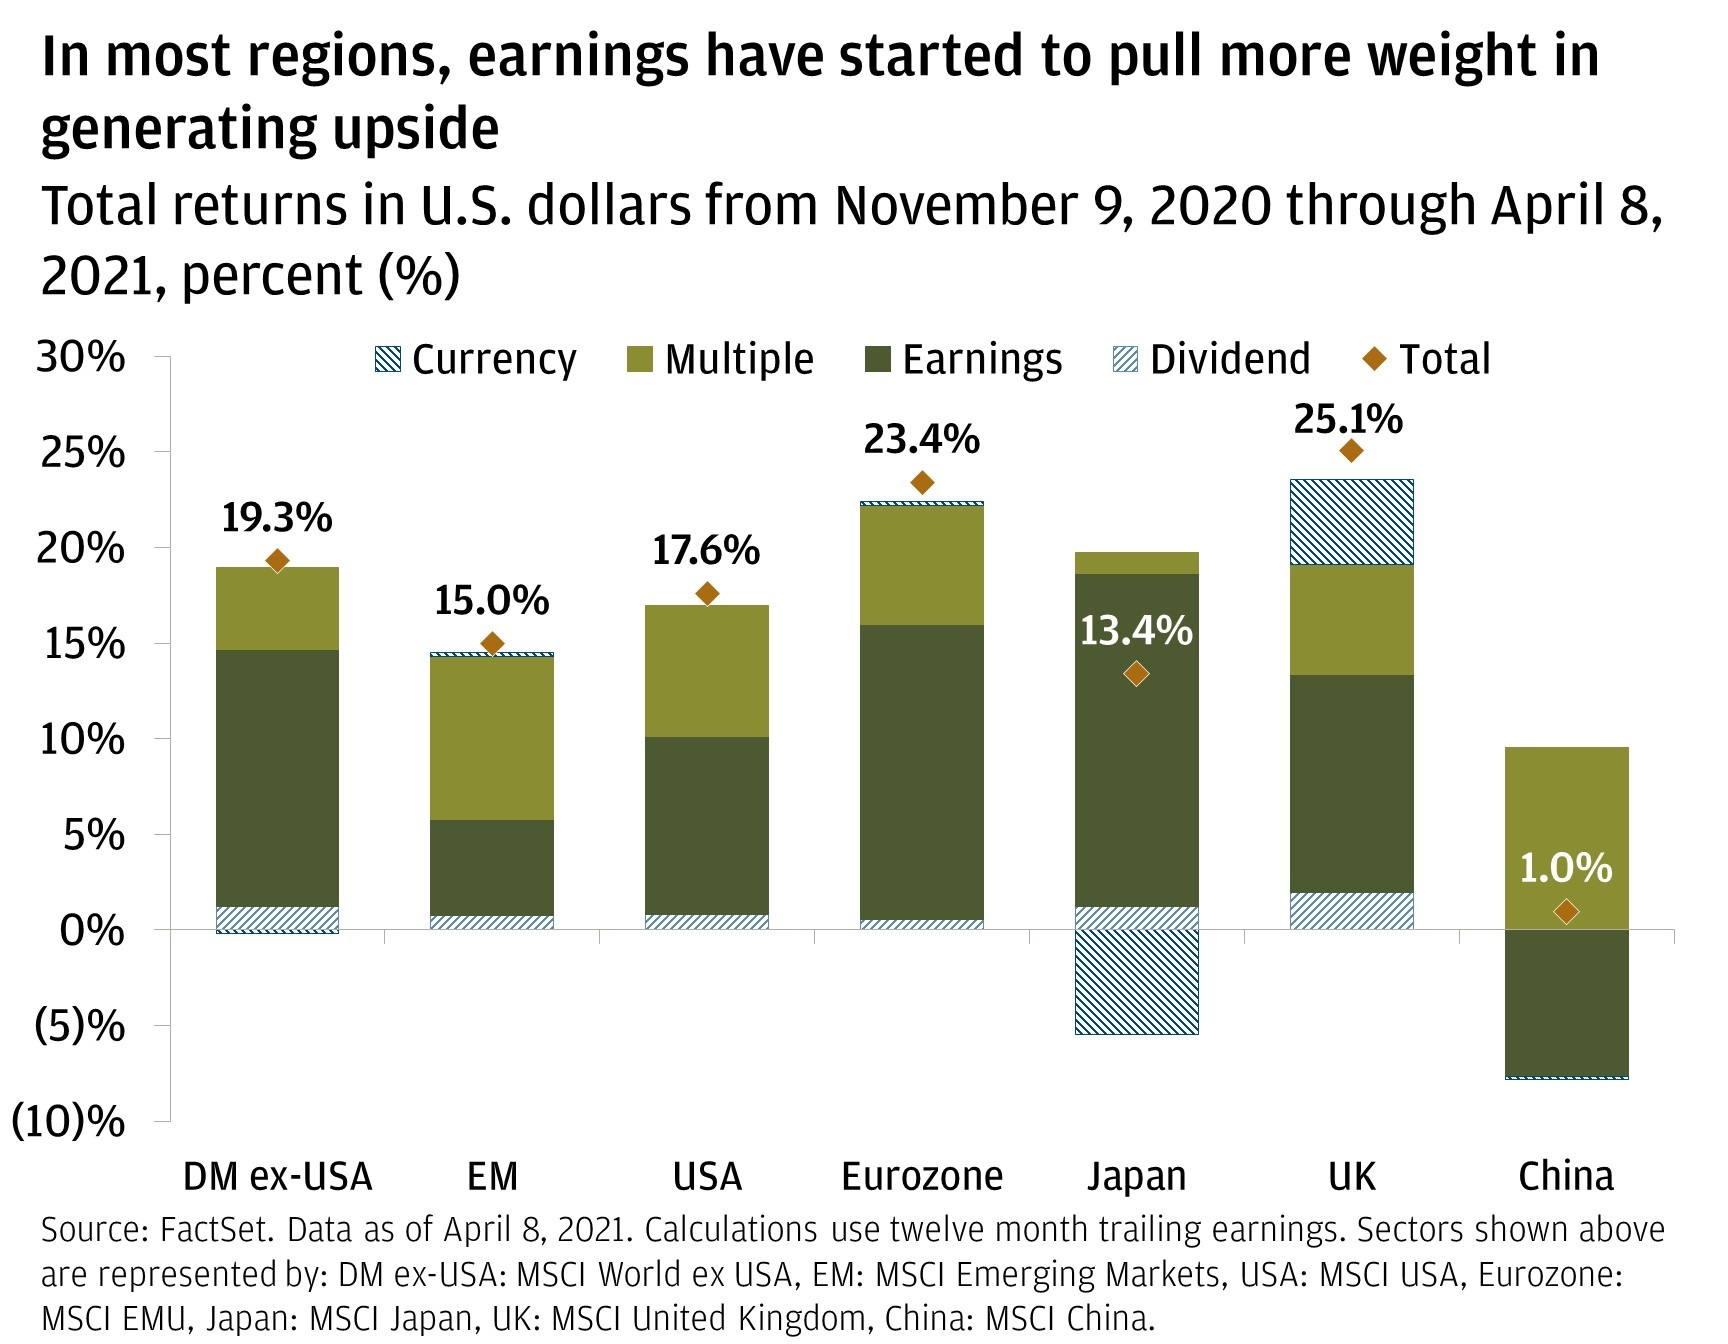 Chart 2: This chart shows the total returns from November 9, 2020 through April 8, 2021 in U.S. dollars for various regions broken down by the relative contributions of currency exchange rates, the earnings multiple, earnings and the dividend.